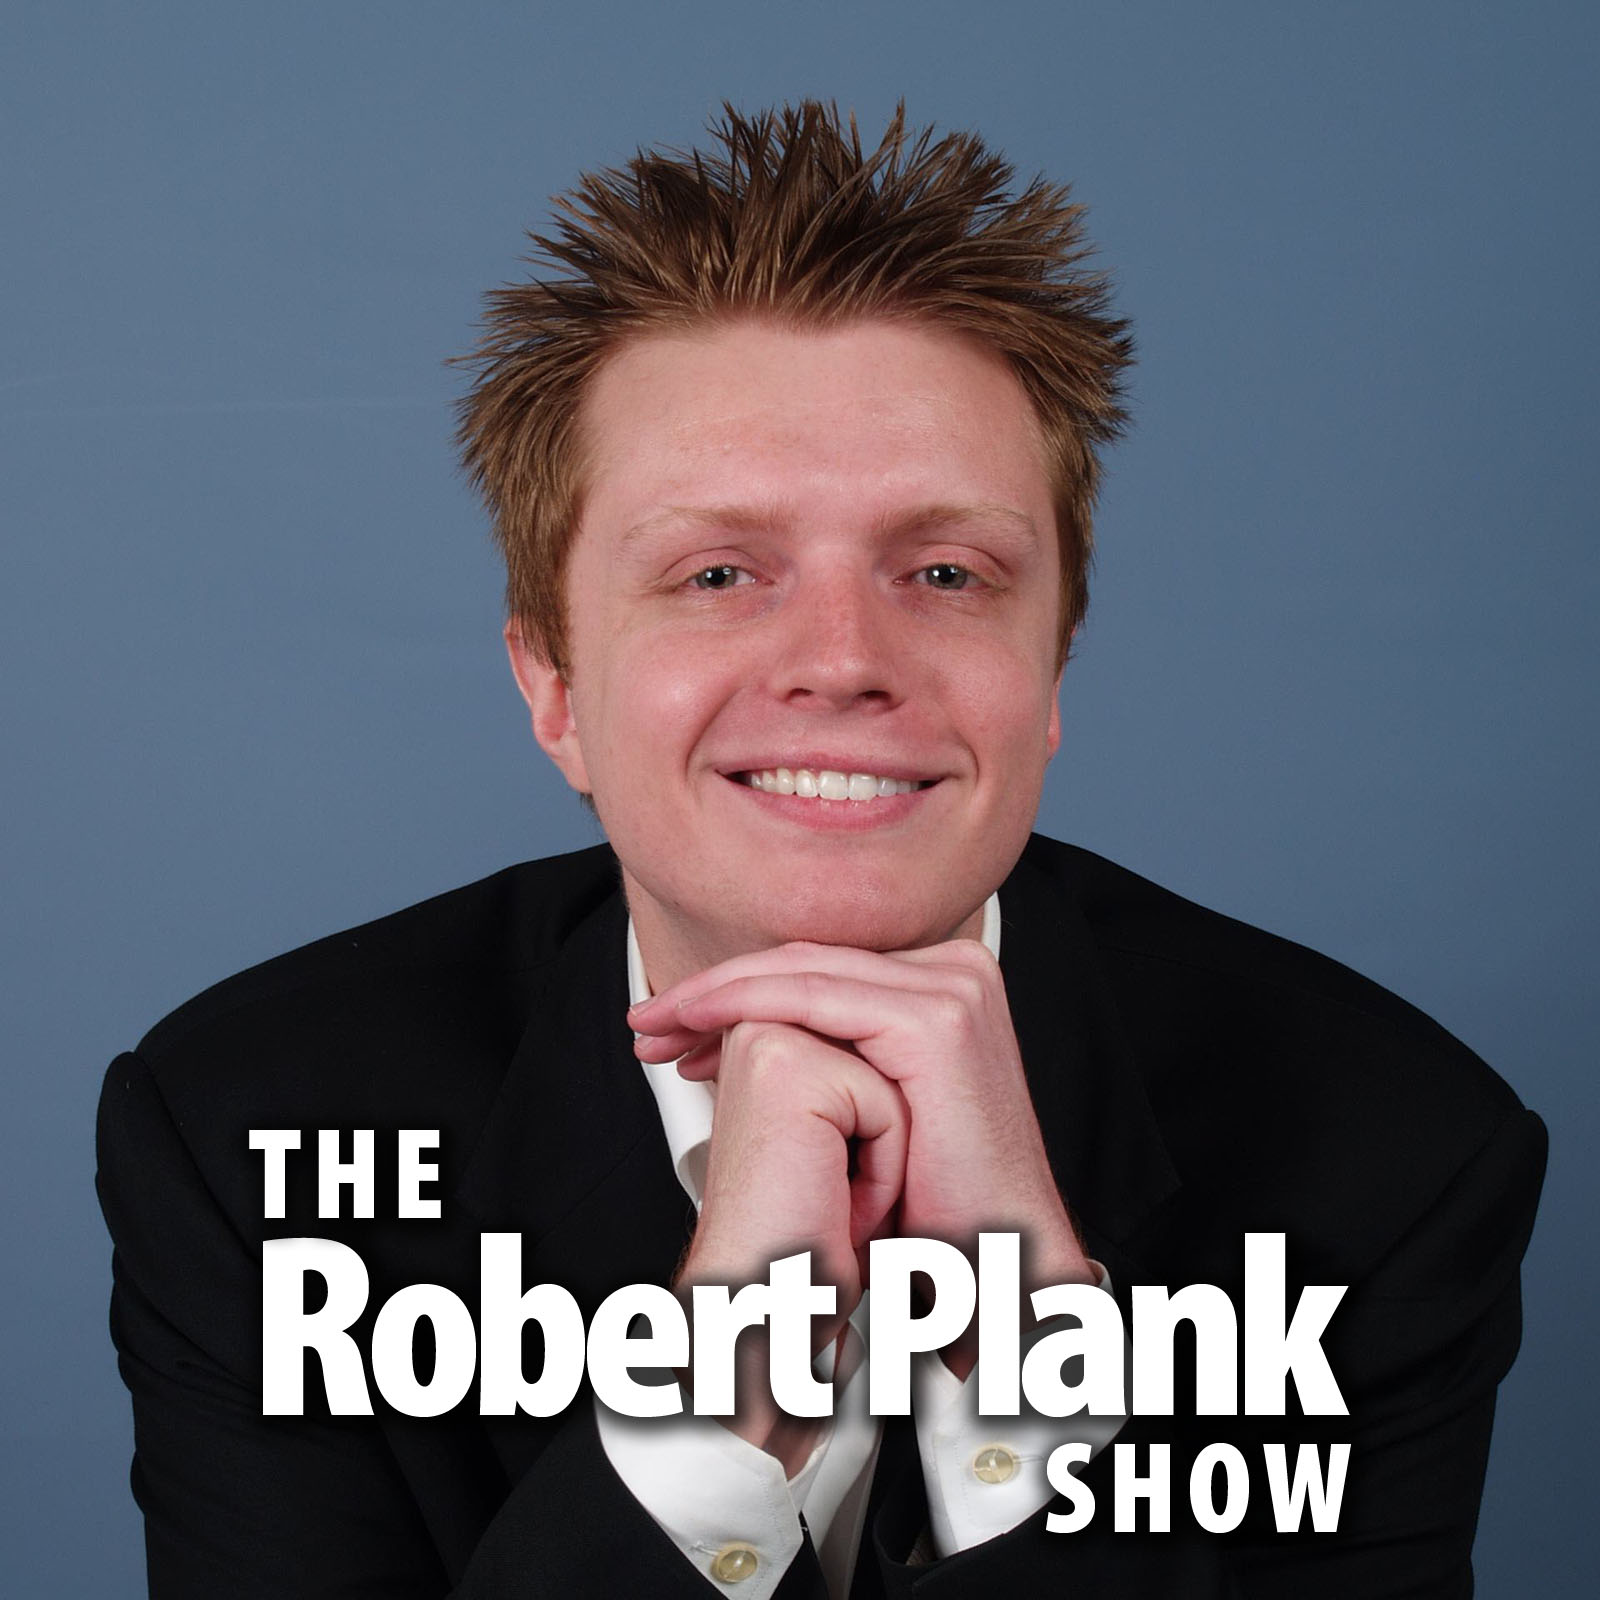 Robert Plank Show: Making Money Online with Membership Sites, WordPress and Webinars